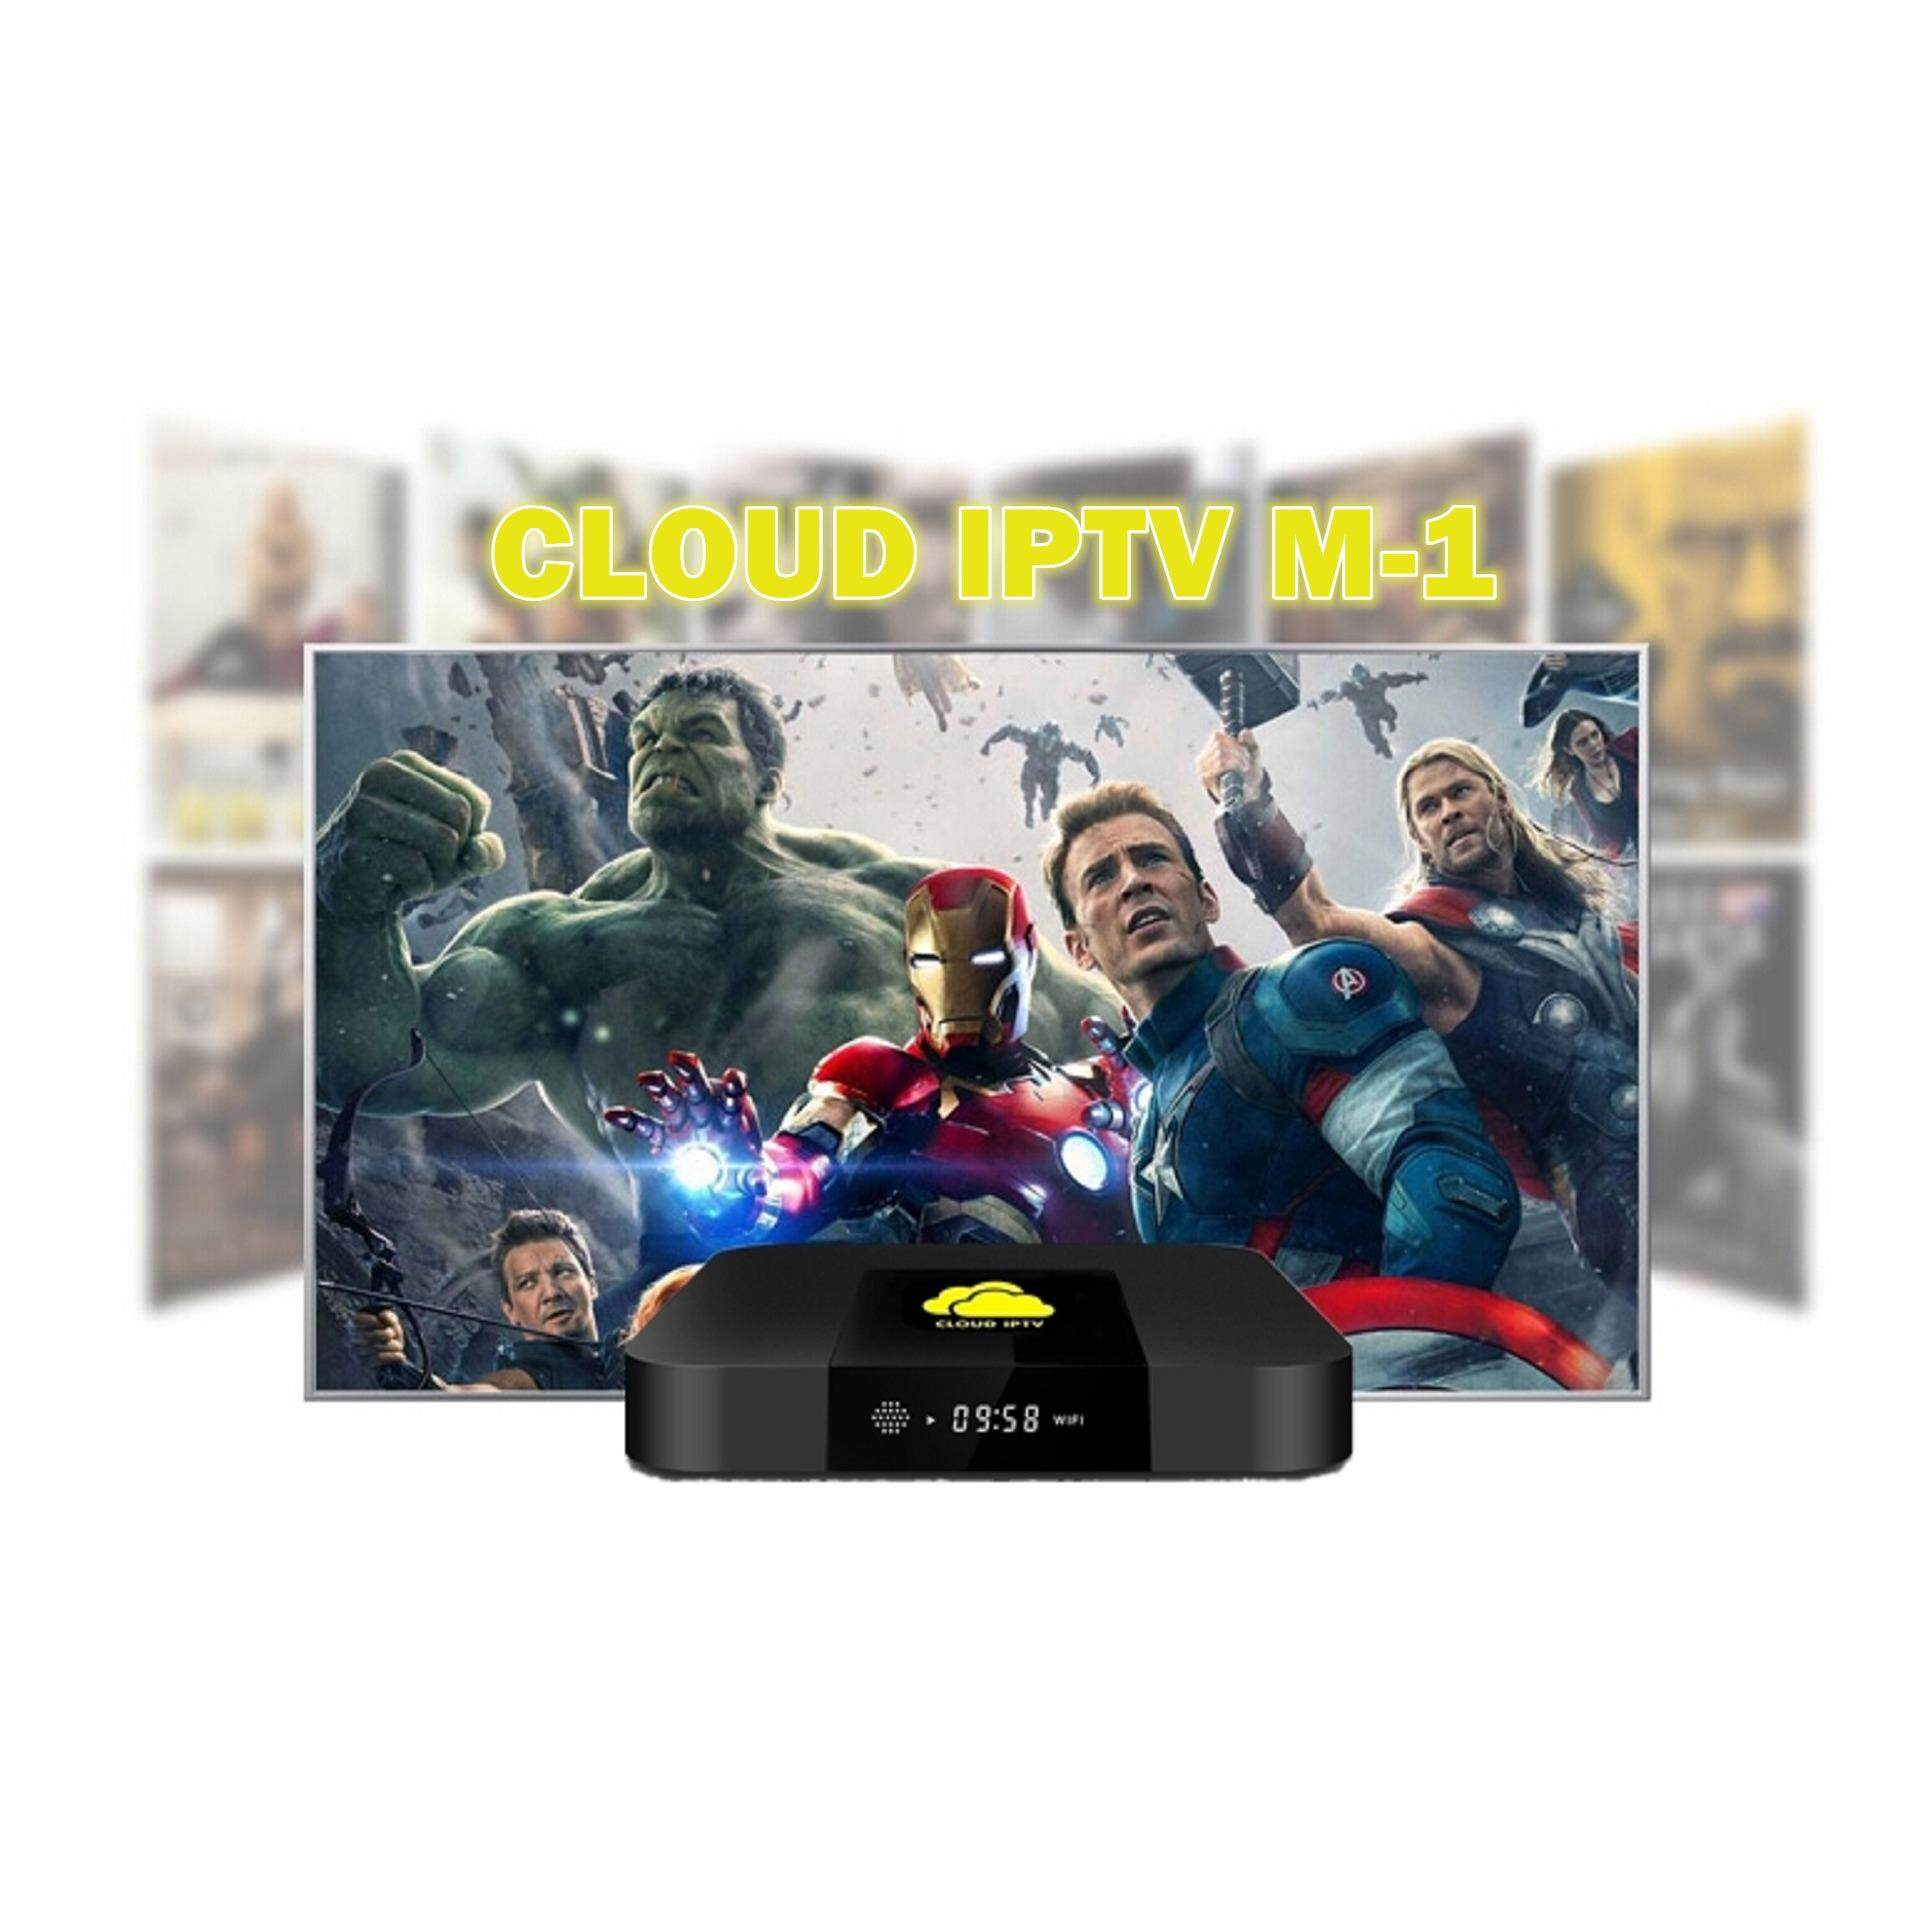 CLOUDIPTV M 1 FREE LIVE TV & VOD 2GB 16GB Best Android TV Box